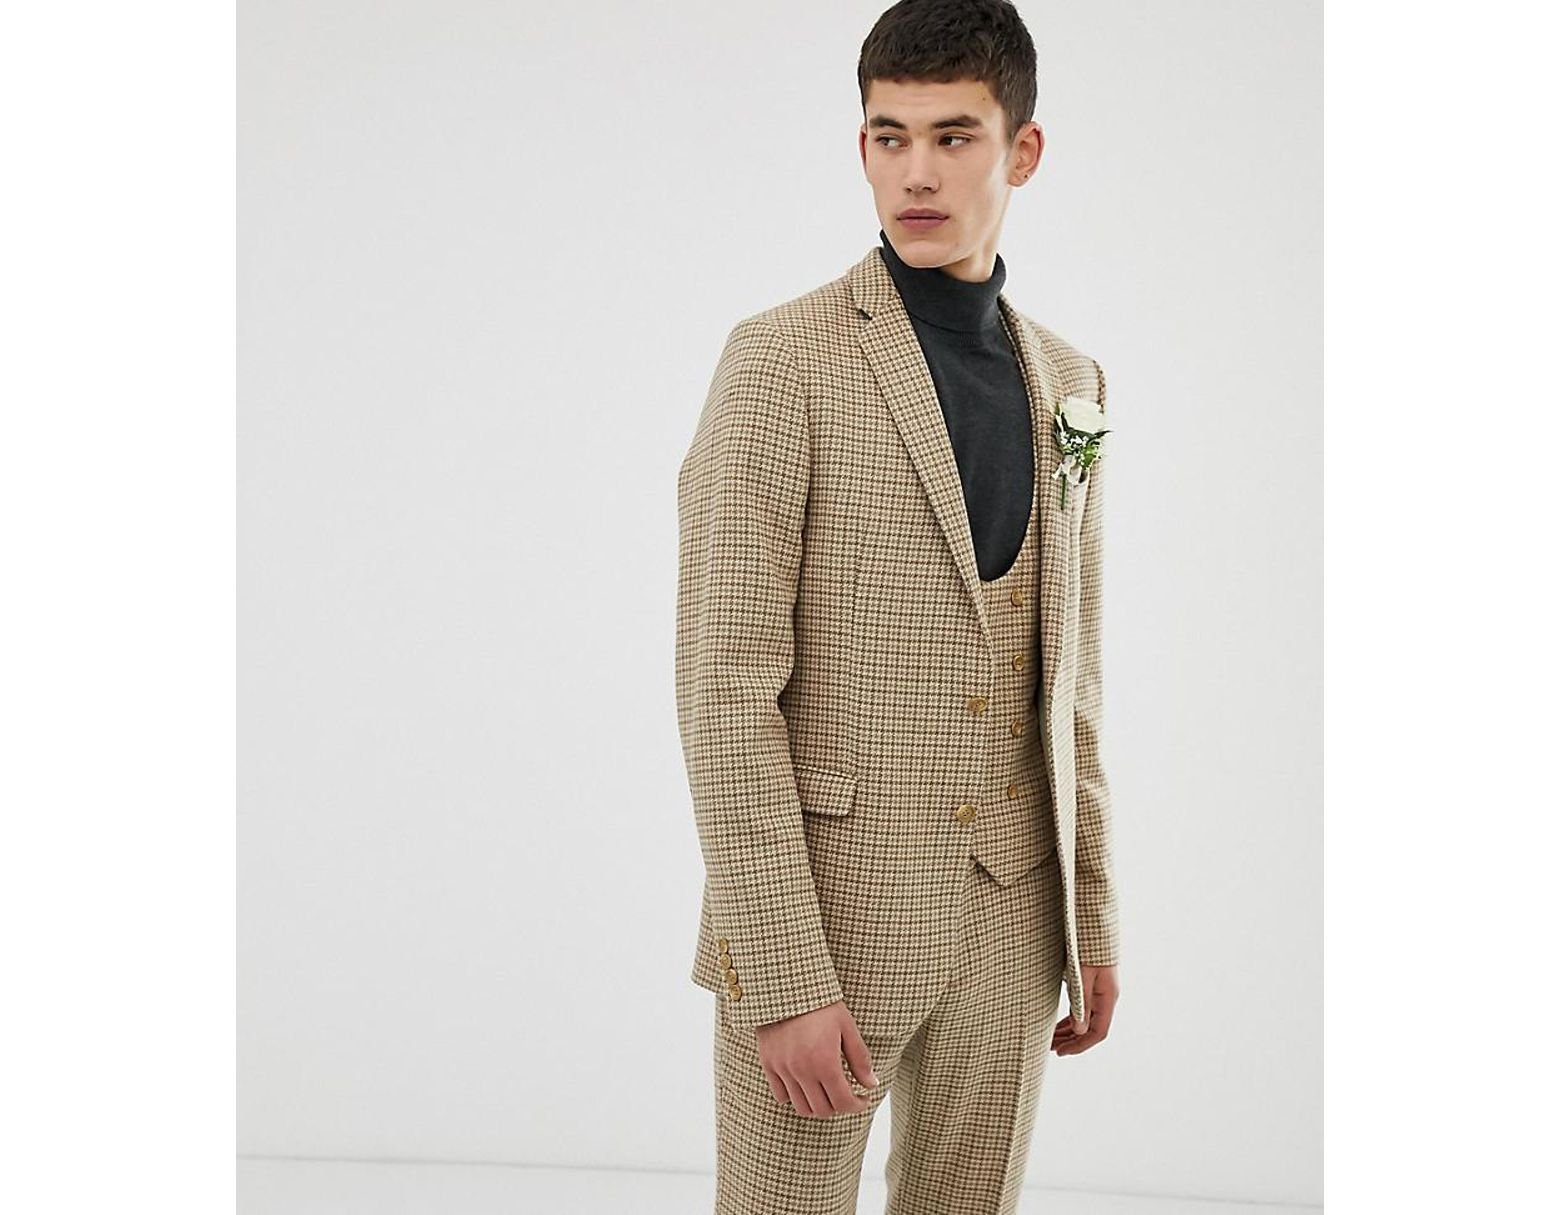 3e8cf296a57 ASOS Tall Wedding Skinny Suit Jacket In Stone Micro Check in Natural for  Men - Lyst